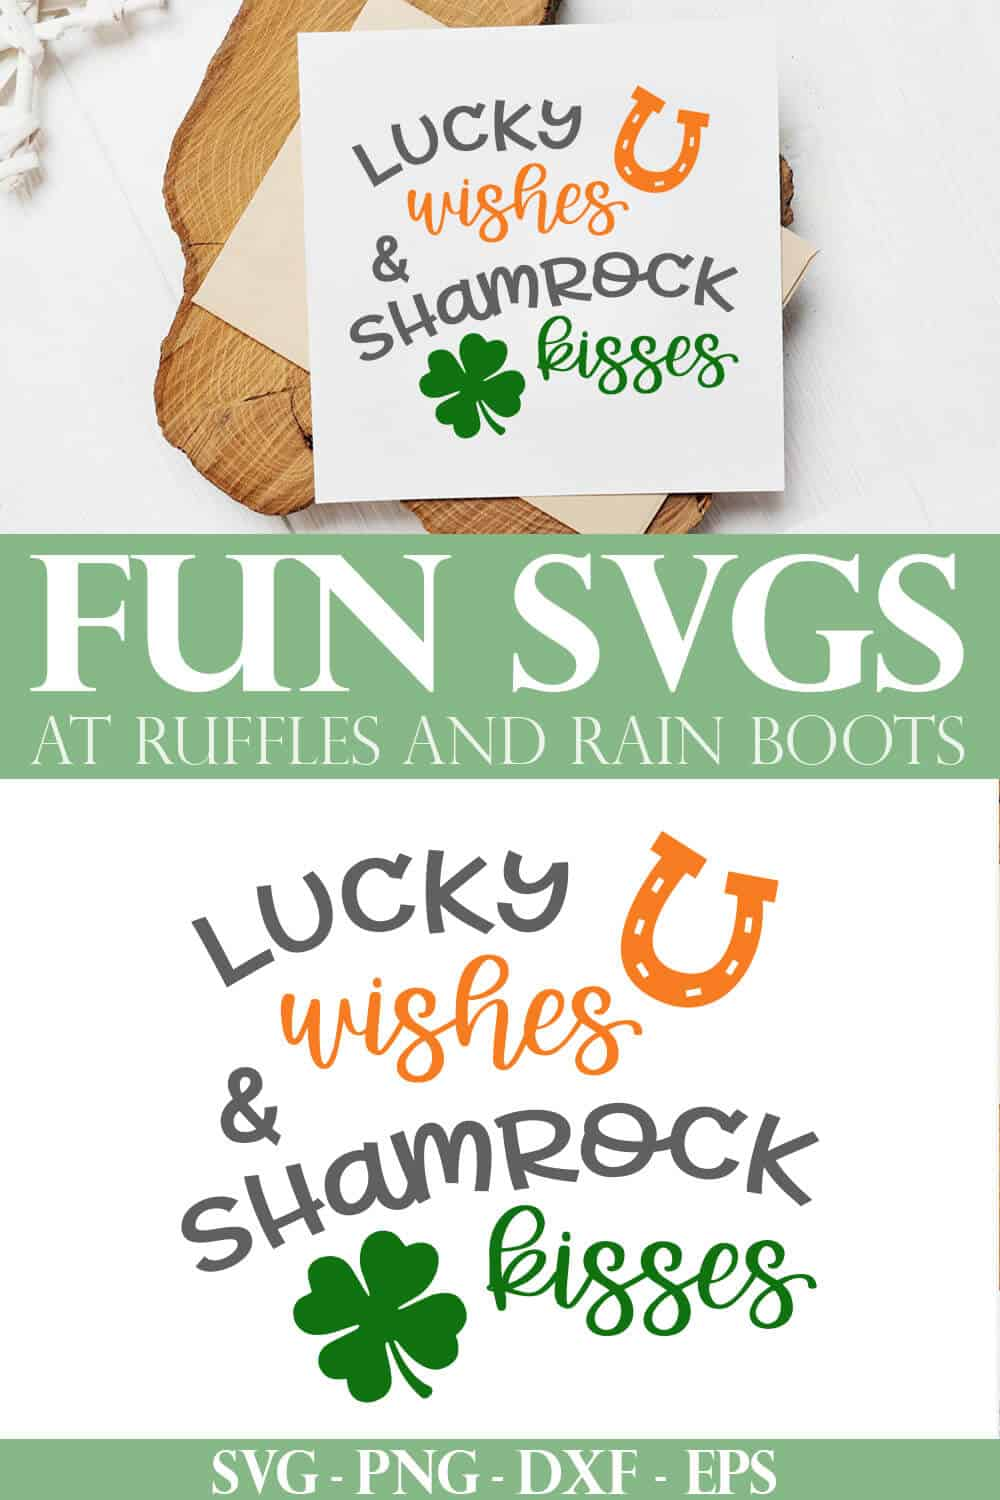 st patricks day cut file lucky wishes and shamrock kisses svg on card stock and wood plank